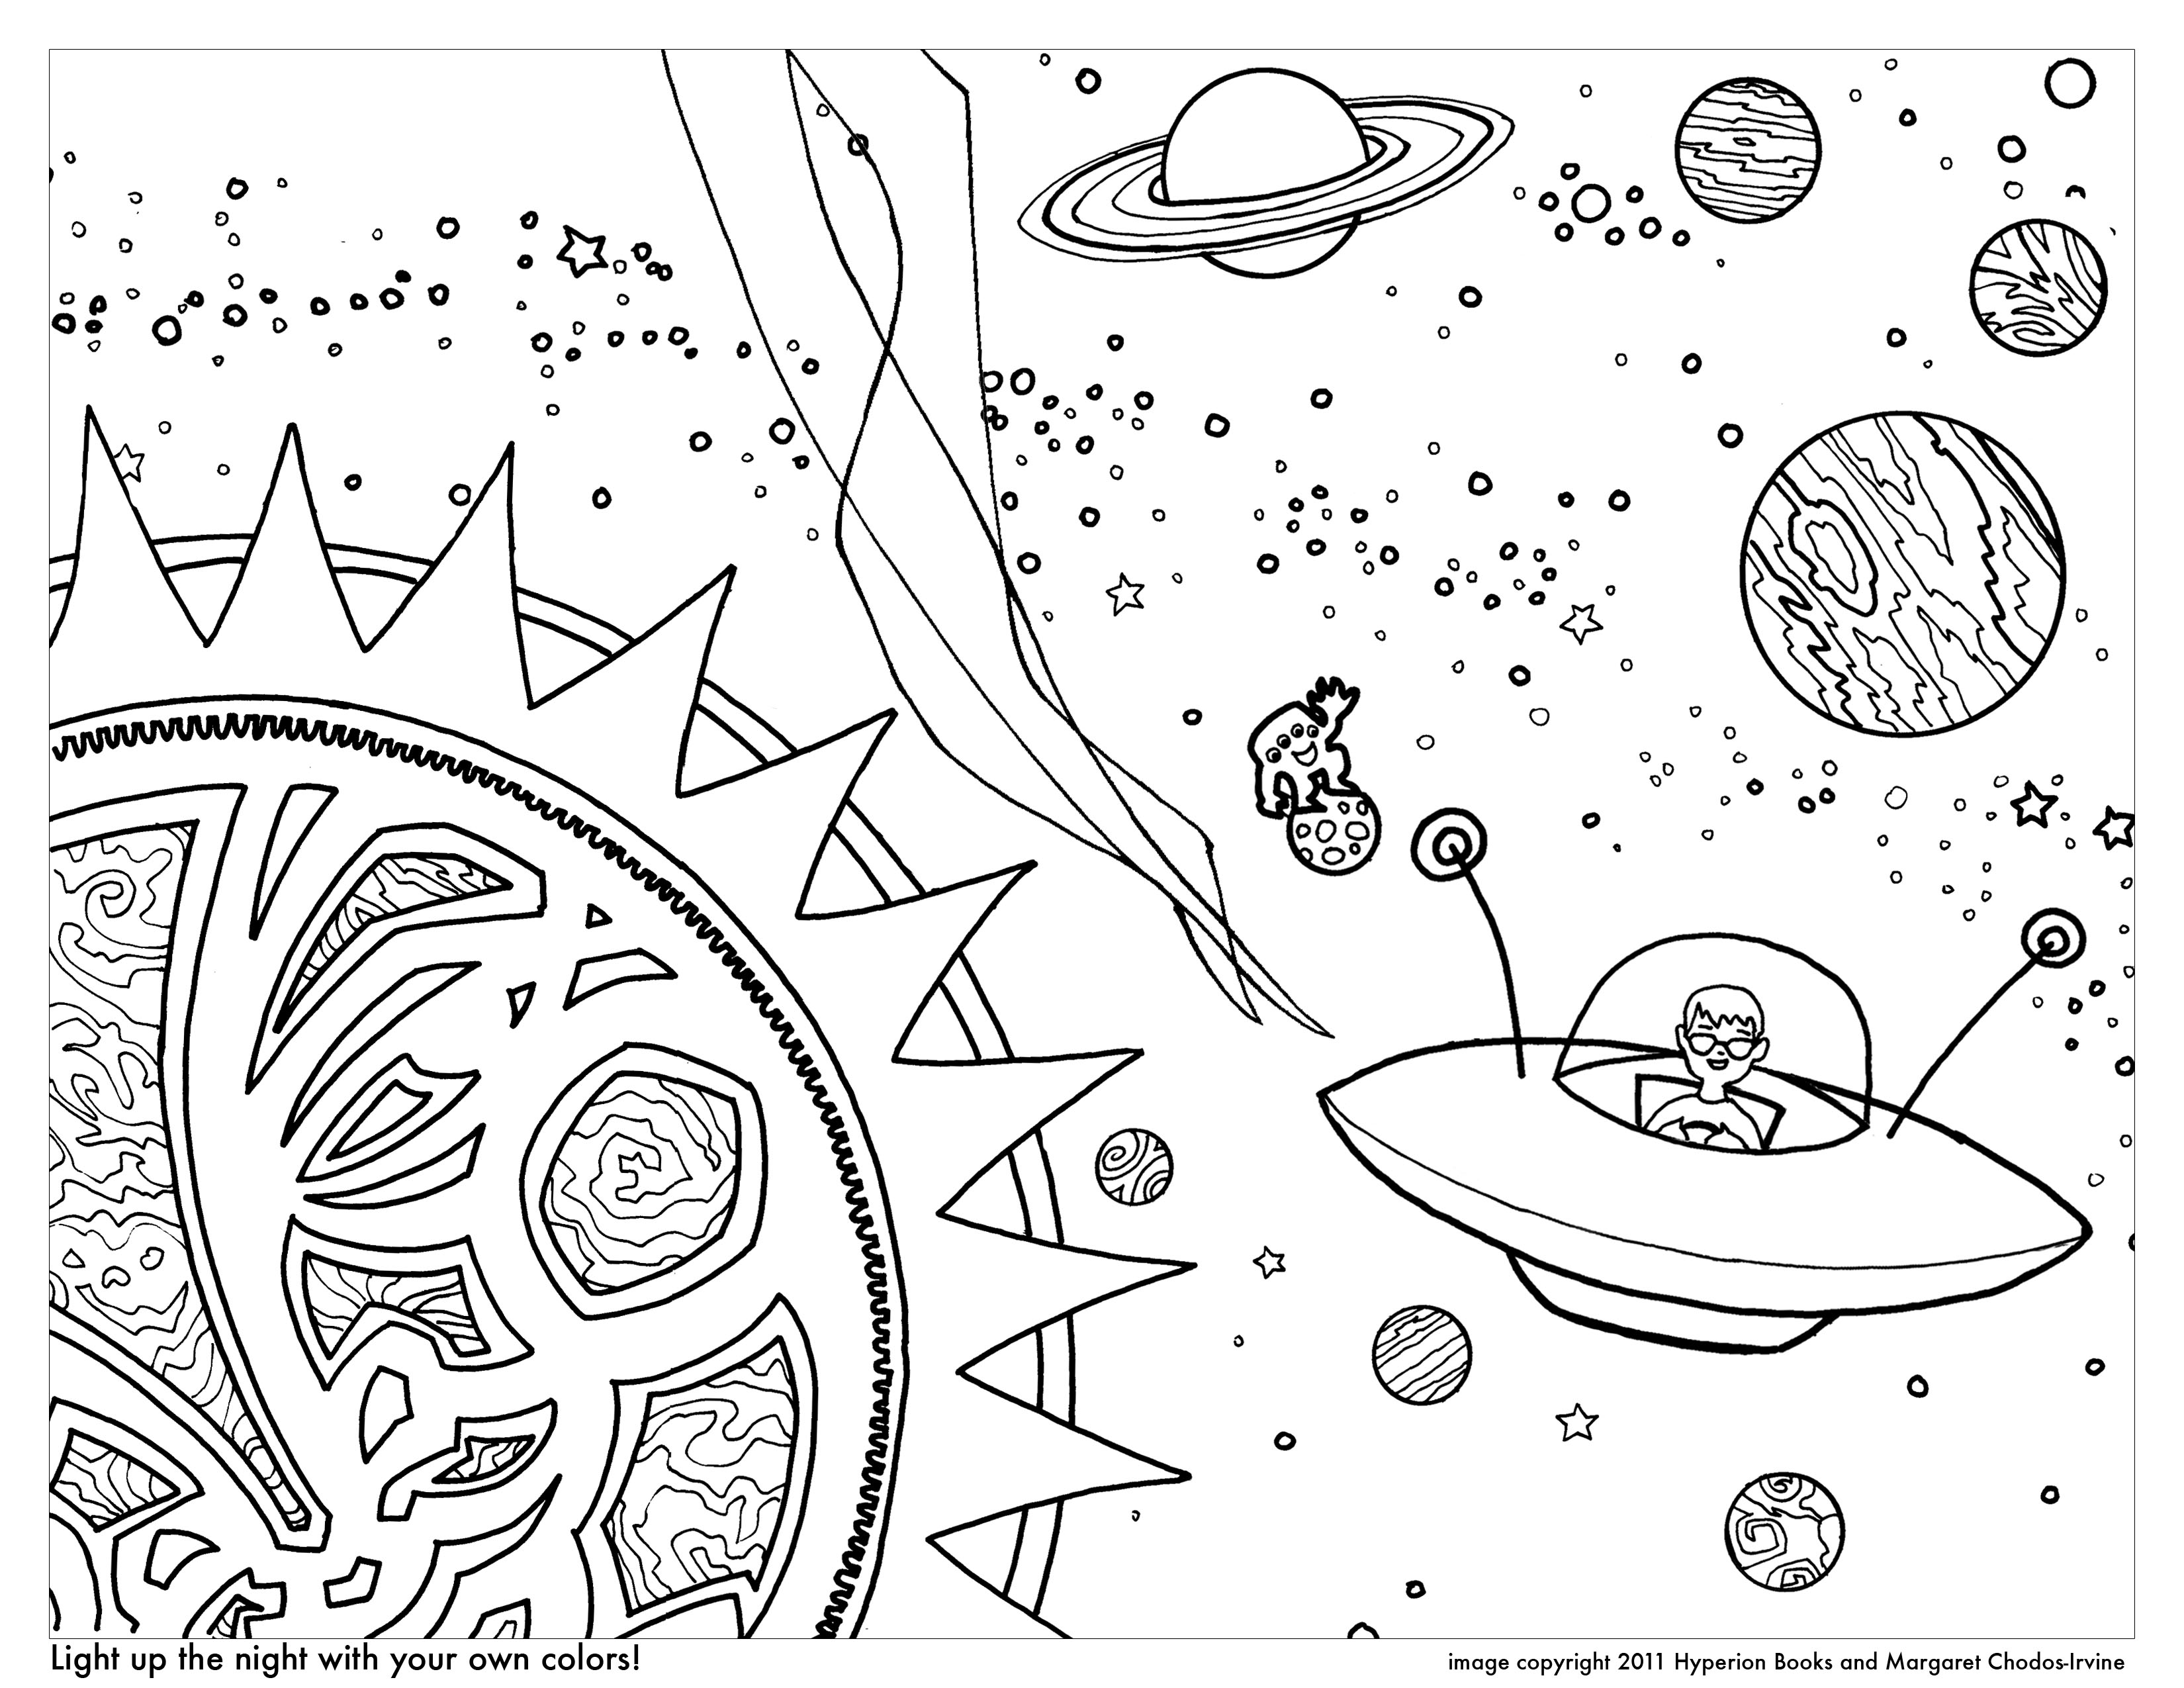 planets coloring sheets free coloring pages printable pictures to color kids sheets coloring planets 1 1